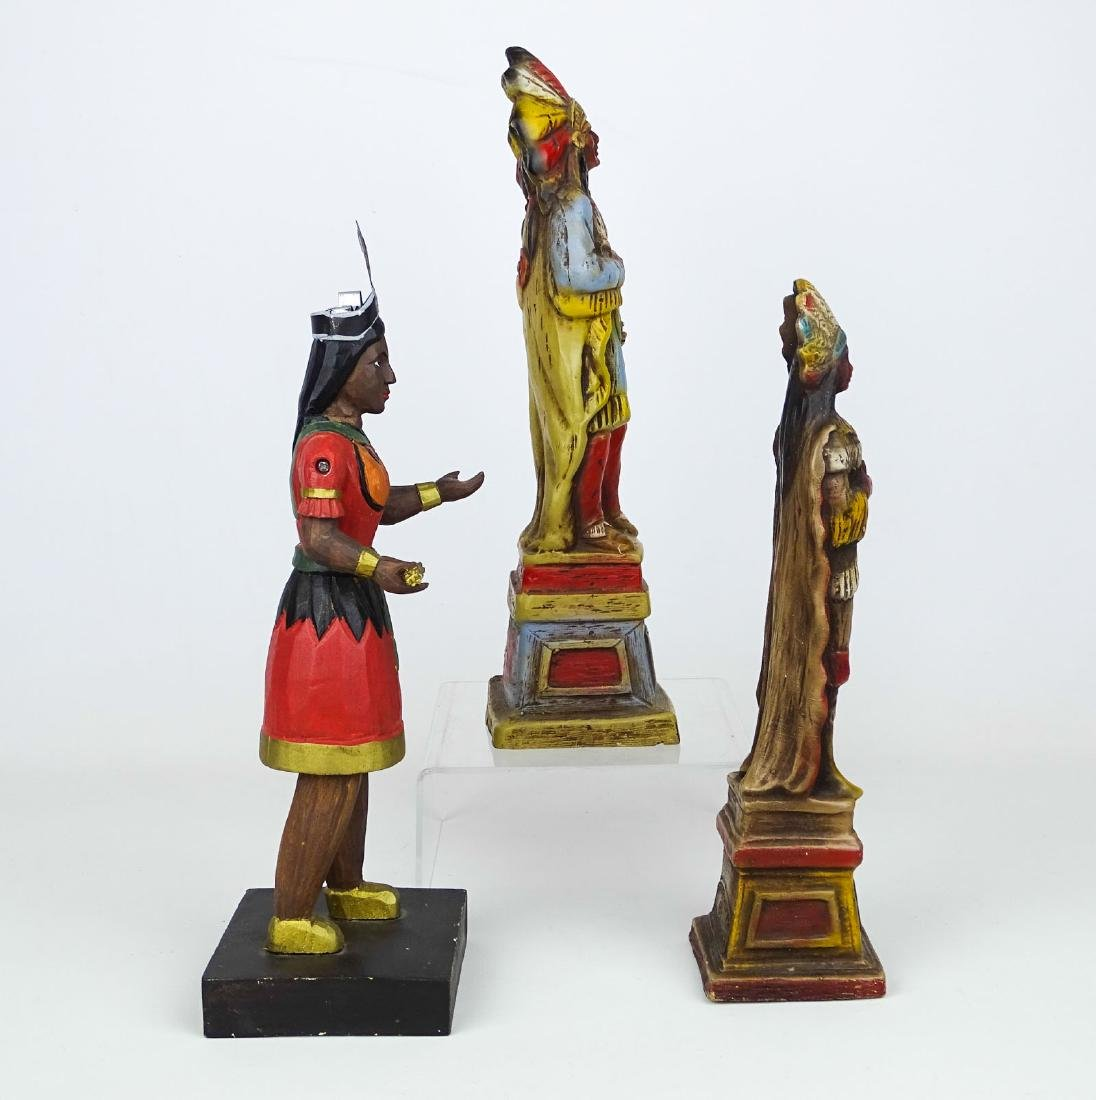 Miniature American Indian Cigar Figures - 2